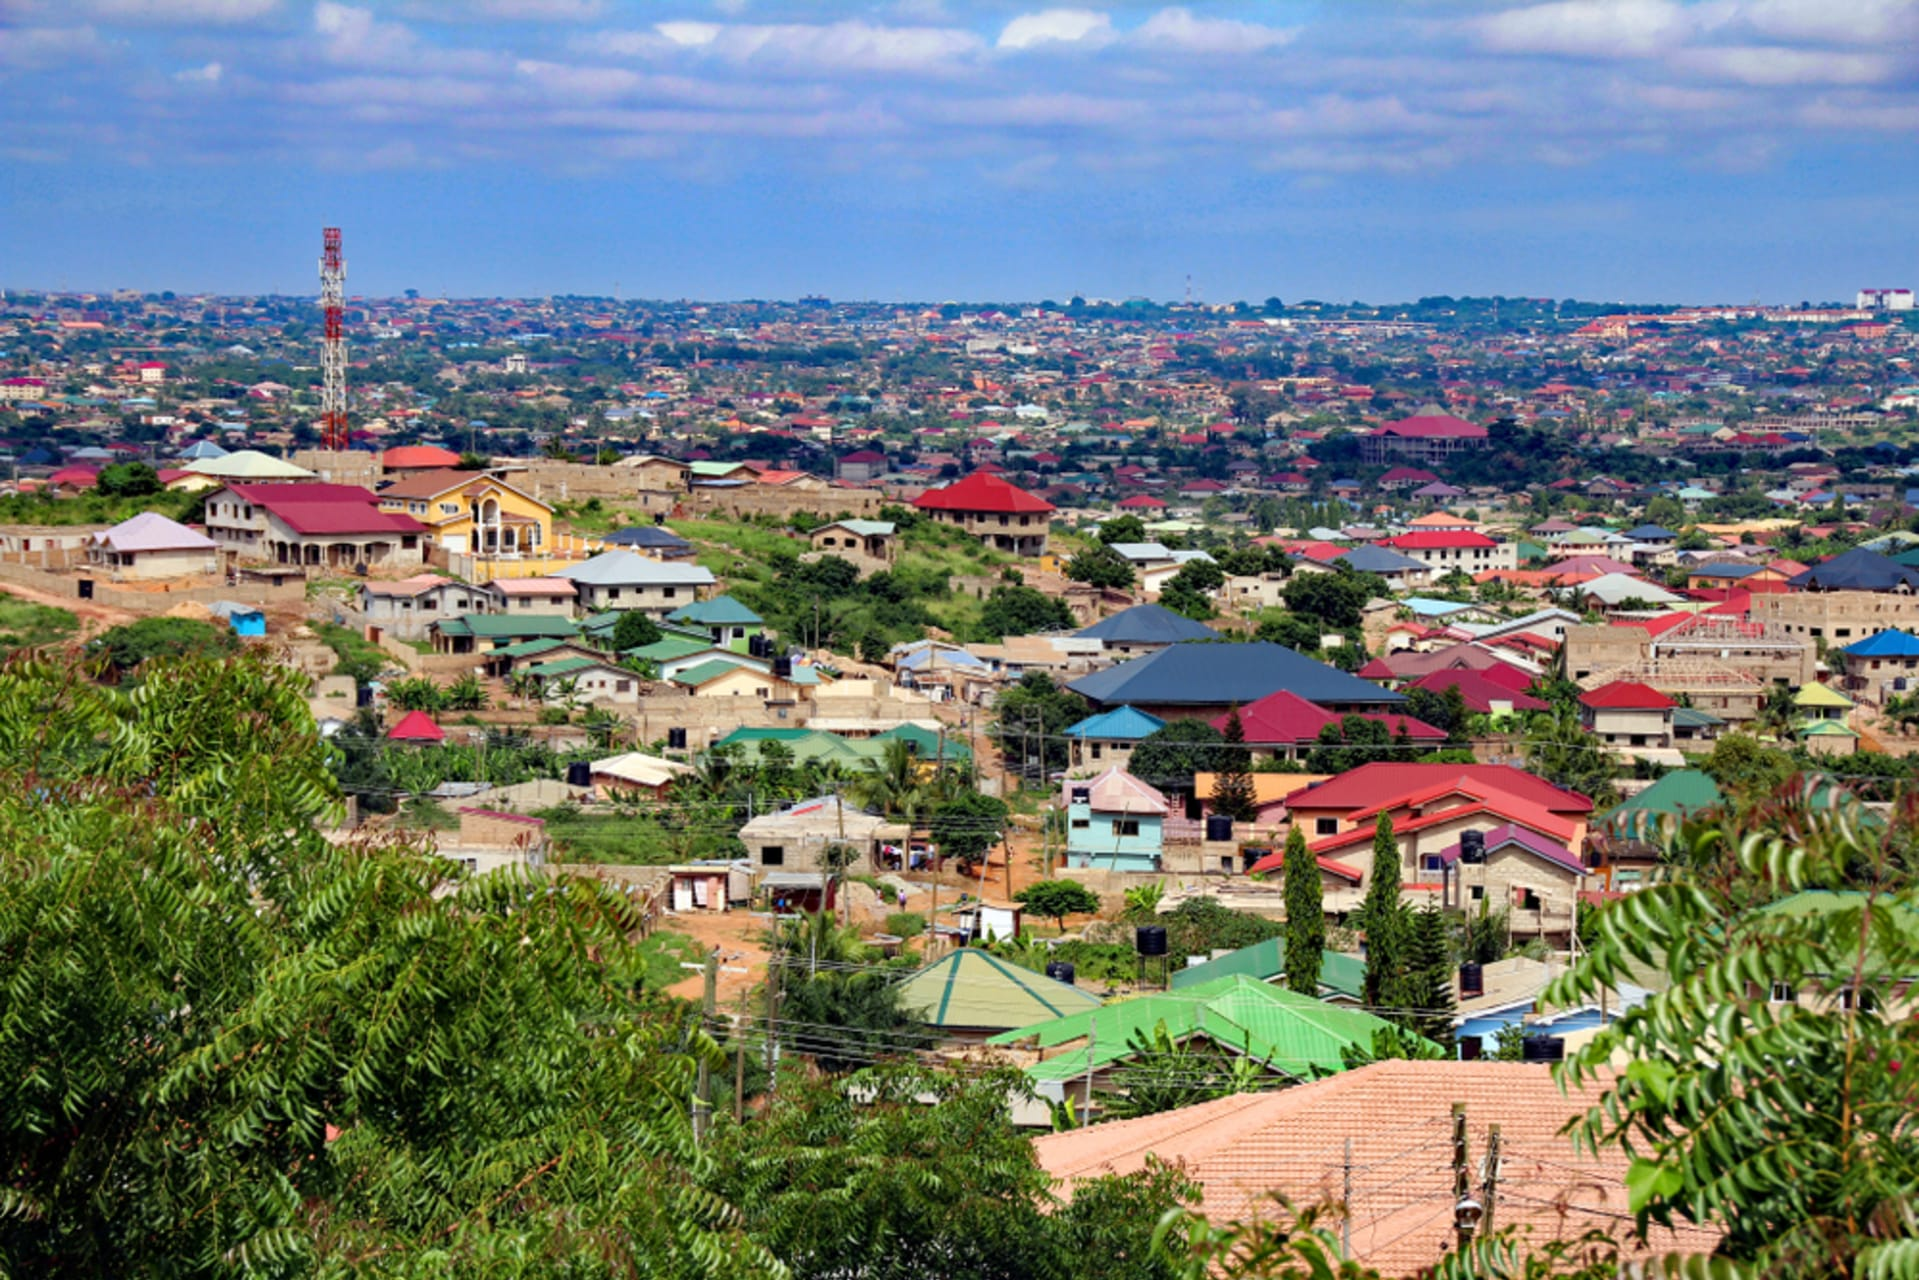 Accra cover image